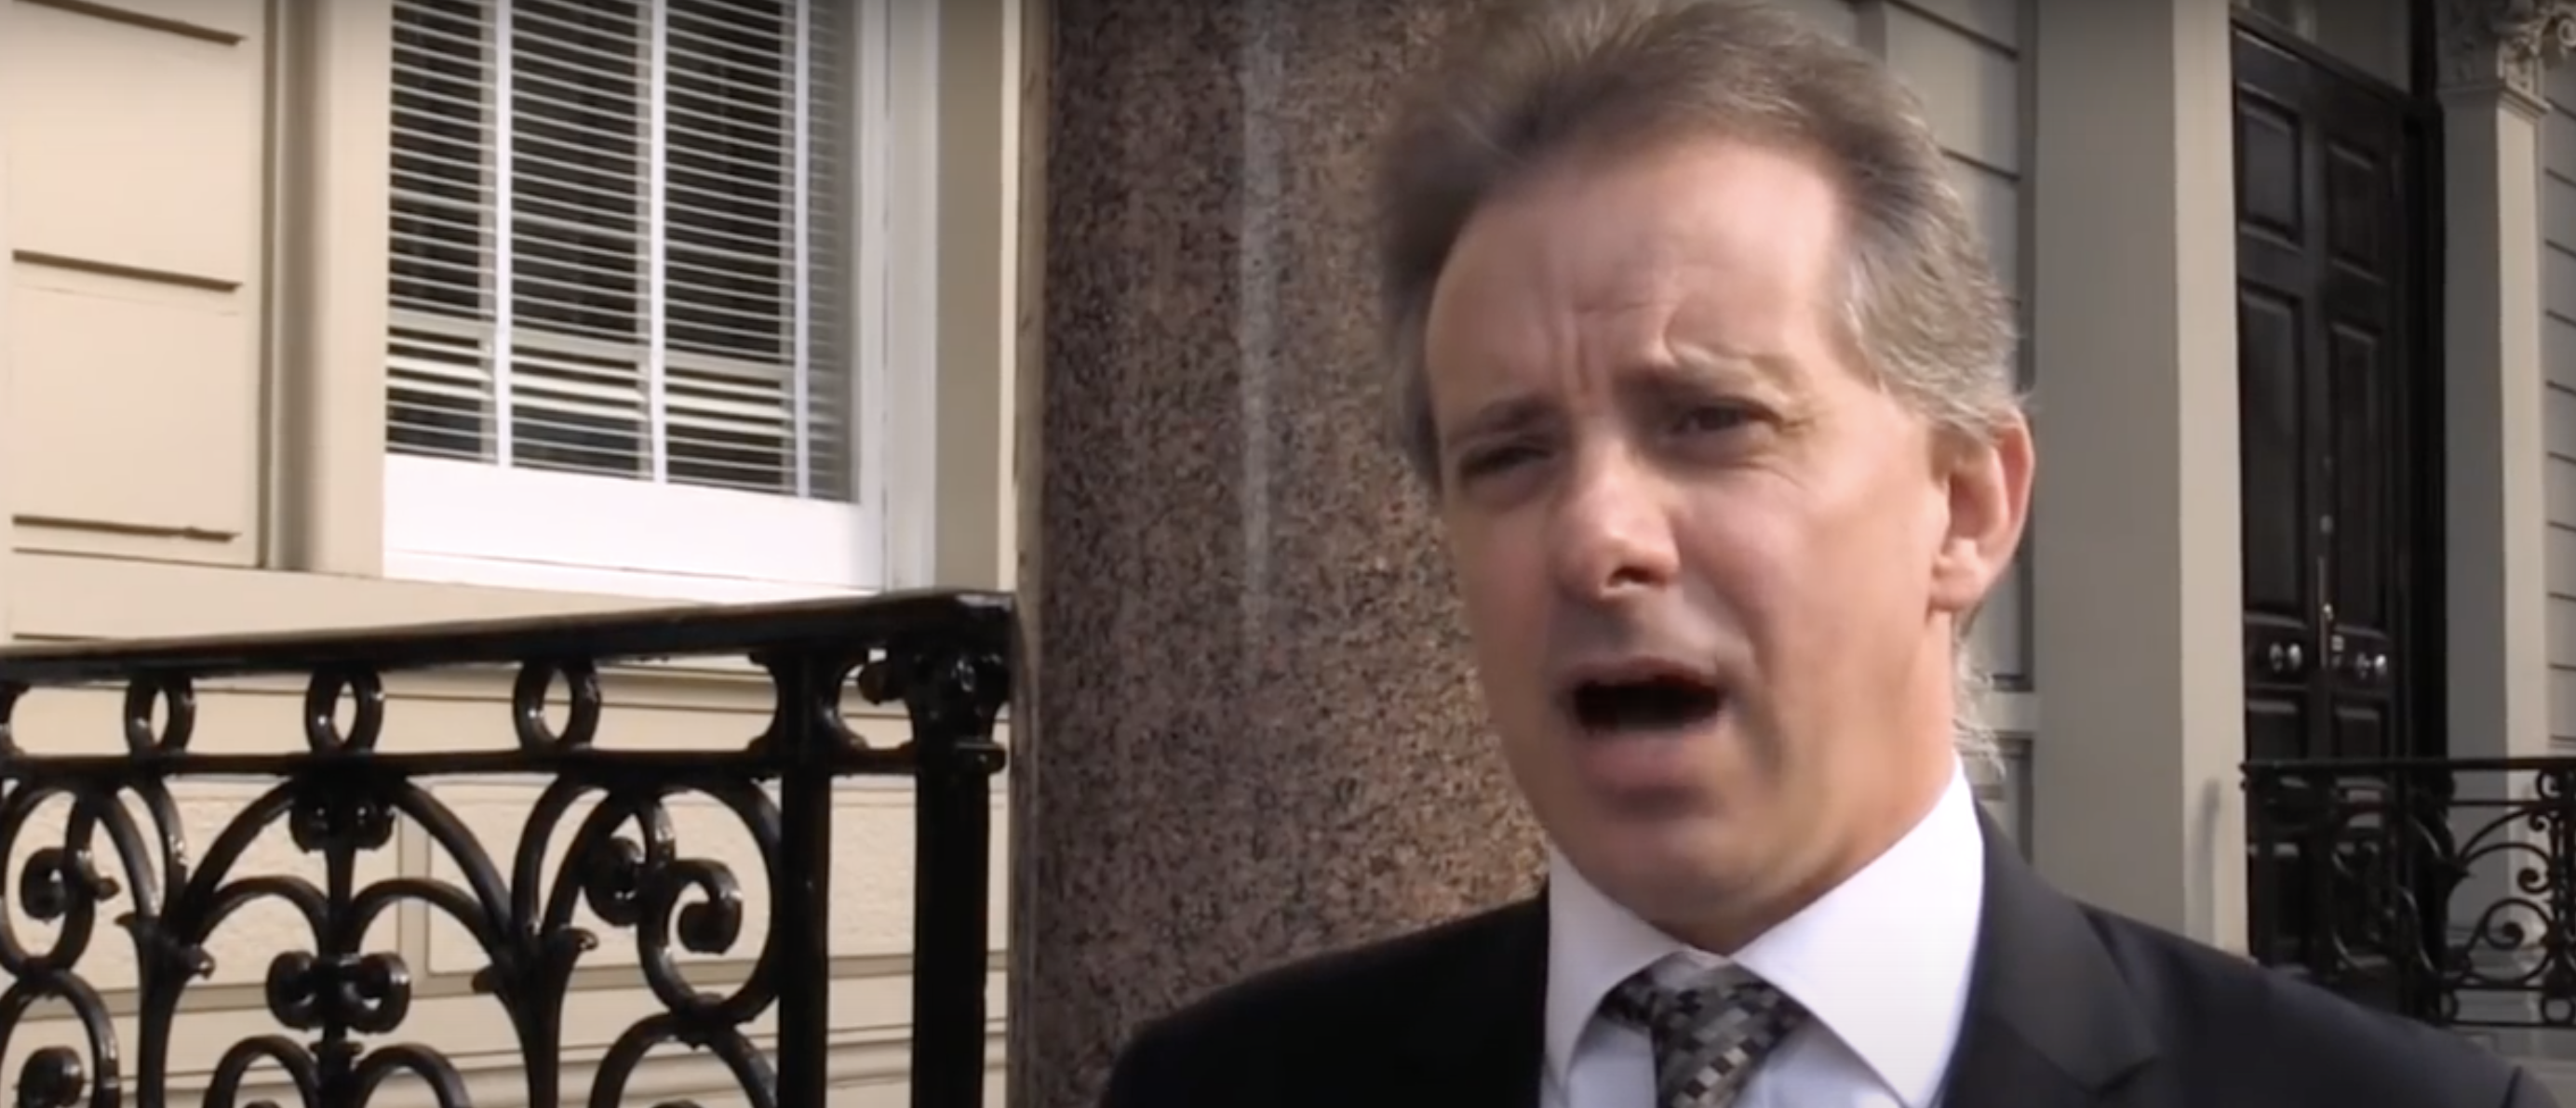 Steele Dossier Source Comes Out Of Hiding, Says He Stands By Trump 'Pee Tape' Allegation